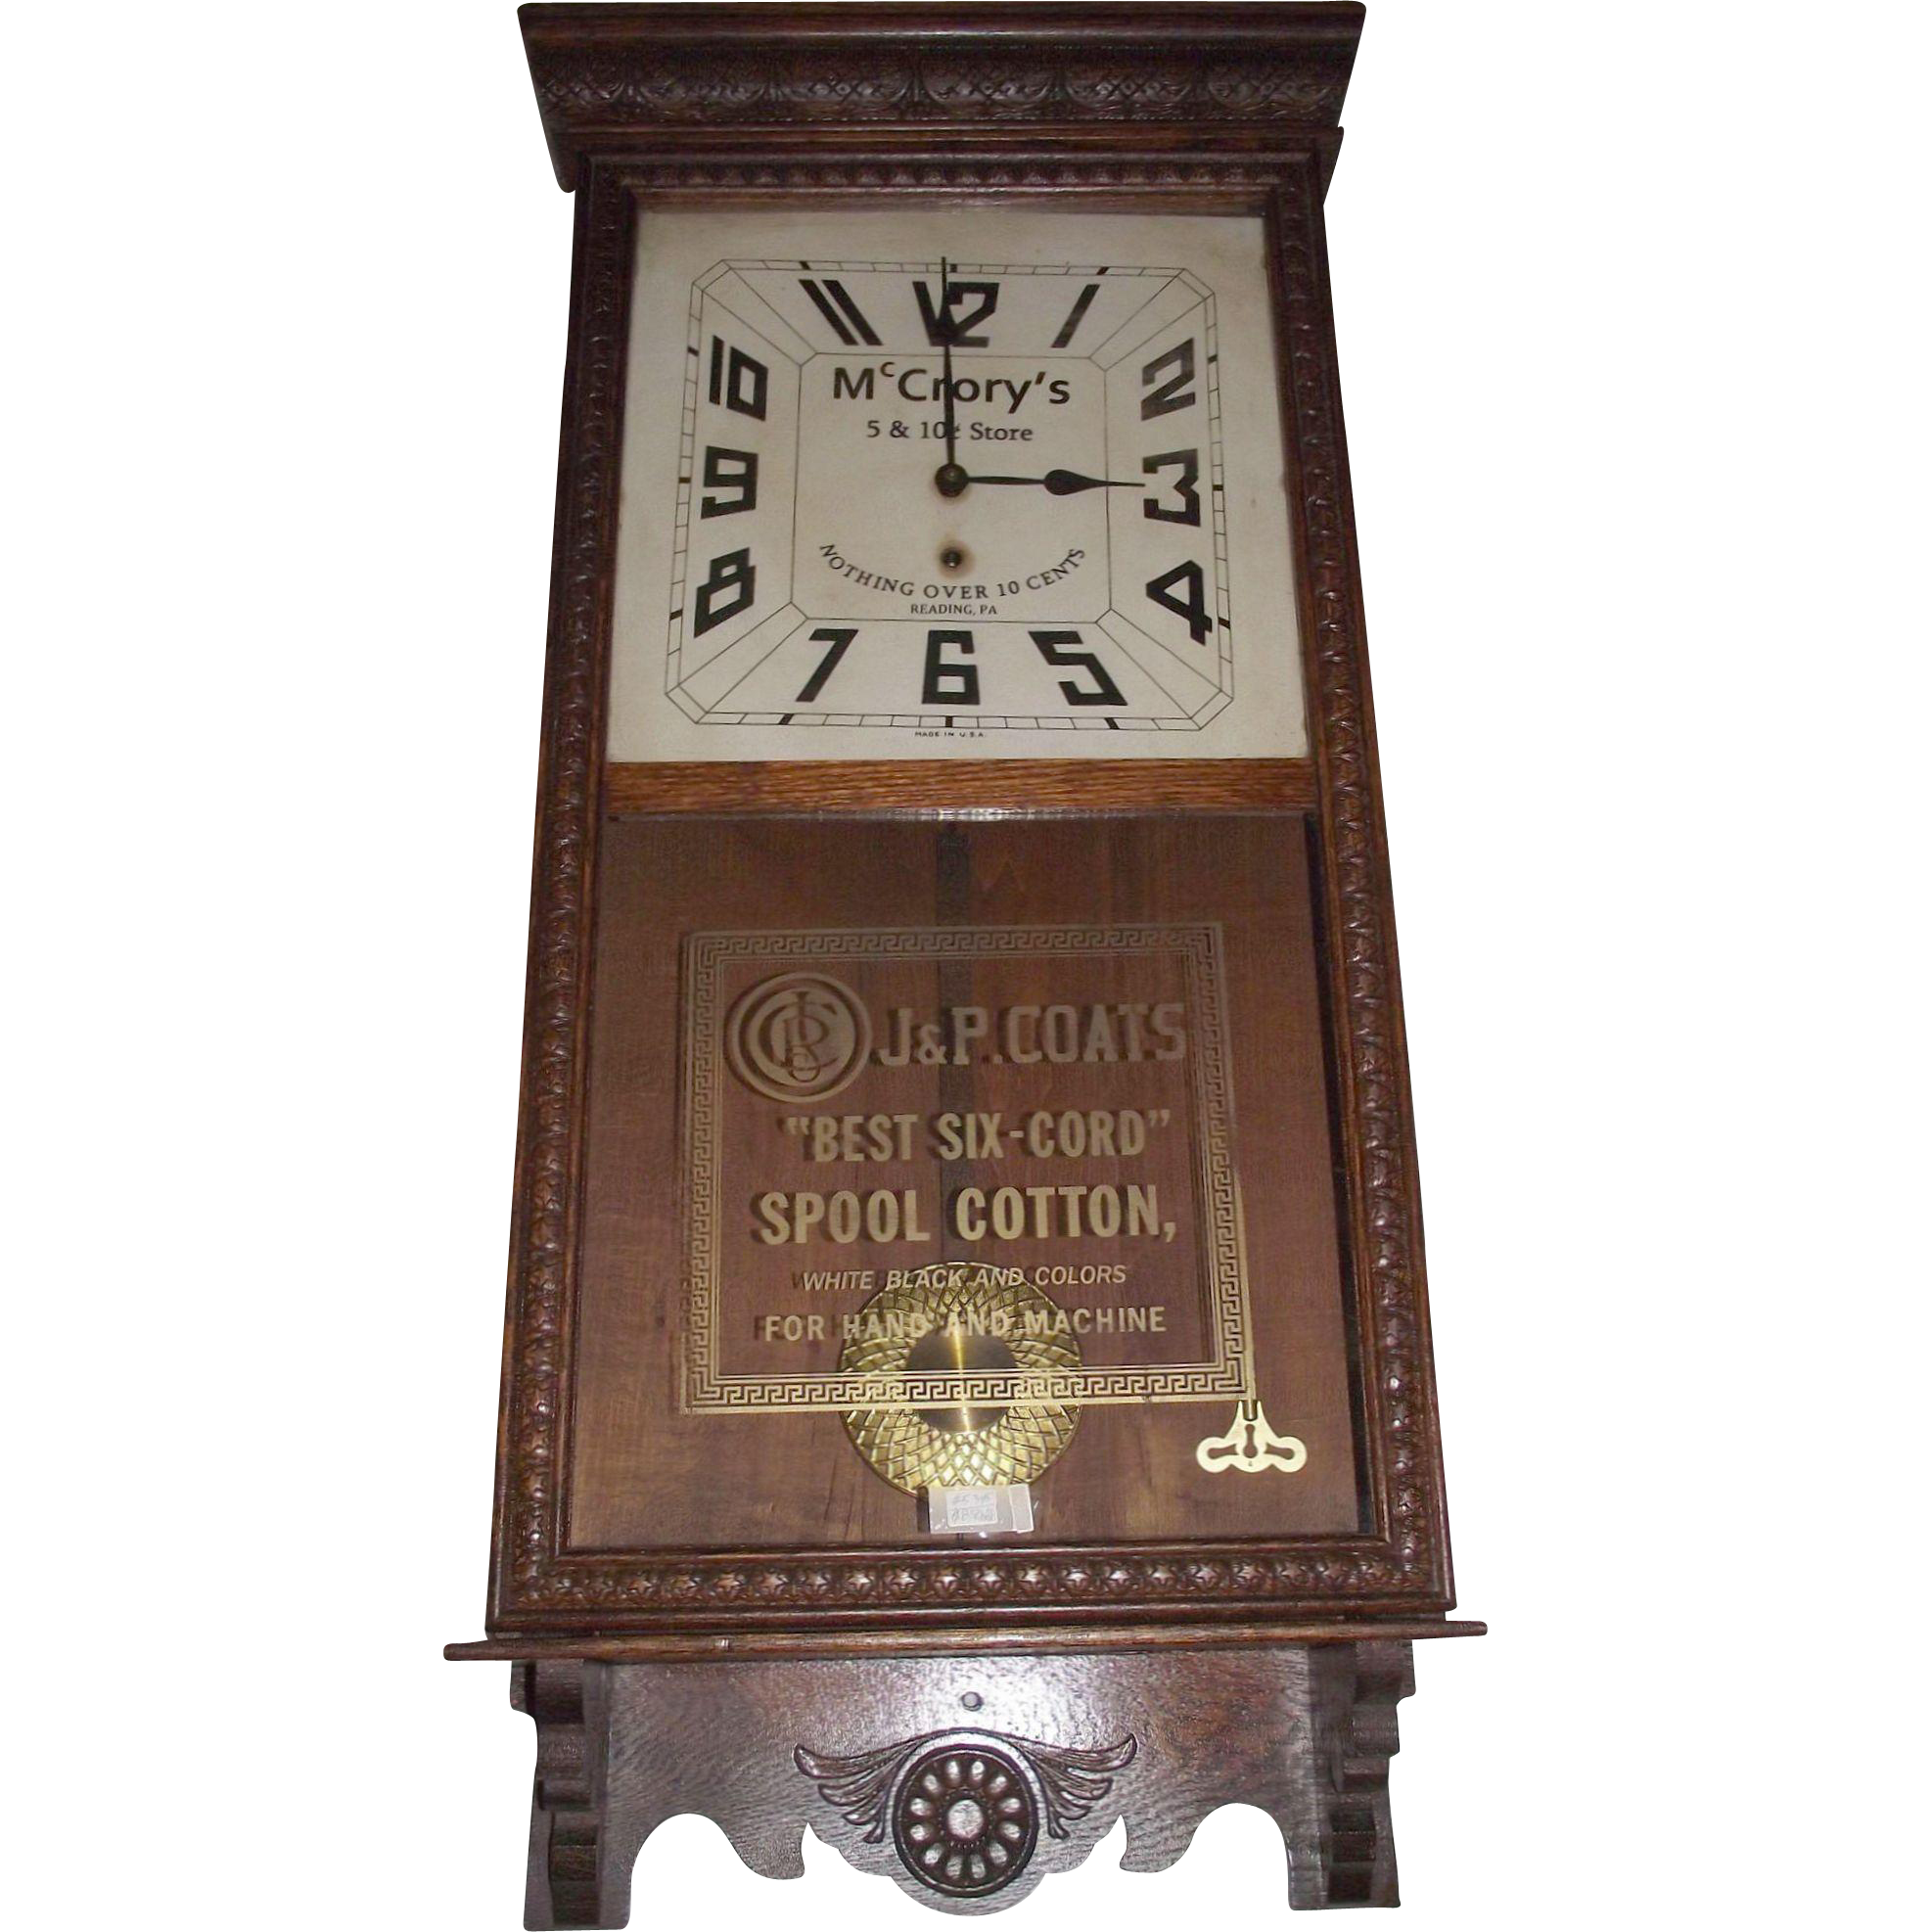 """McCrory's 5 & 10 Cent Store & J. P. Coats Spool Cotton"" Dual Advertising Clock, made by the Sessions Clock Co. in a Solid Oak Case circa 1930 !!"